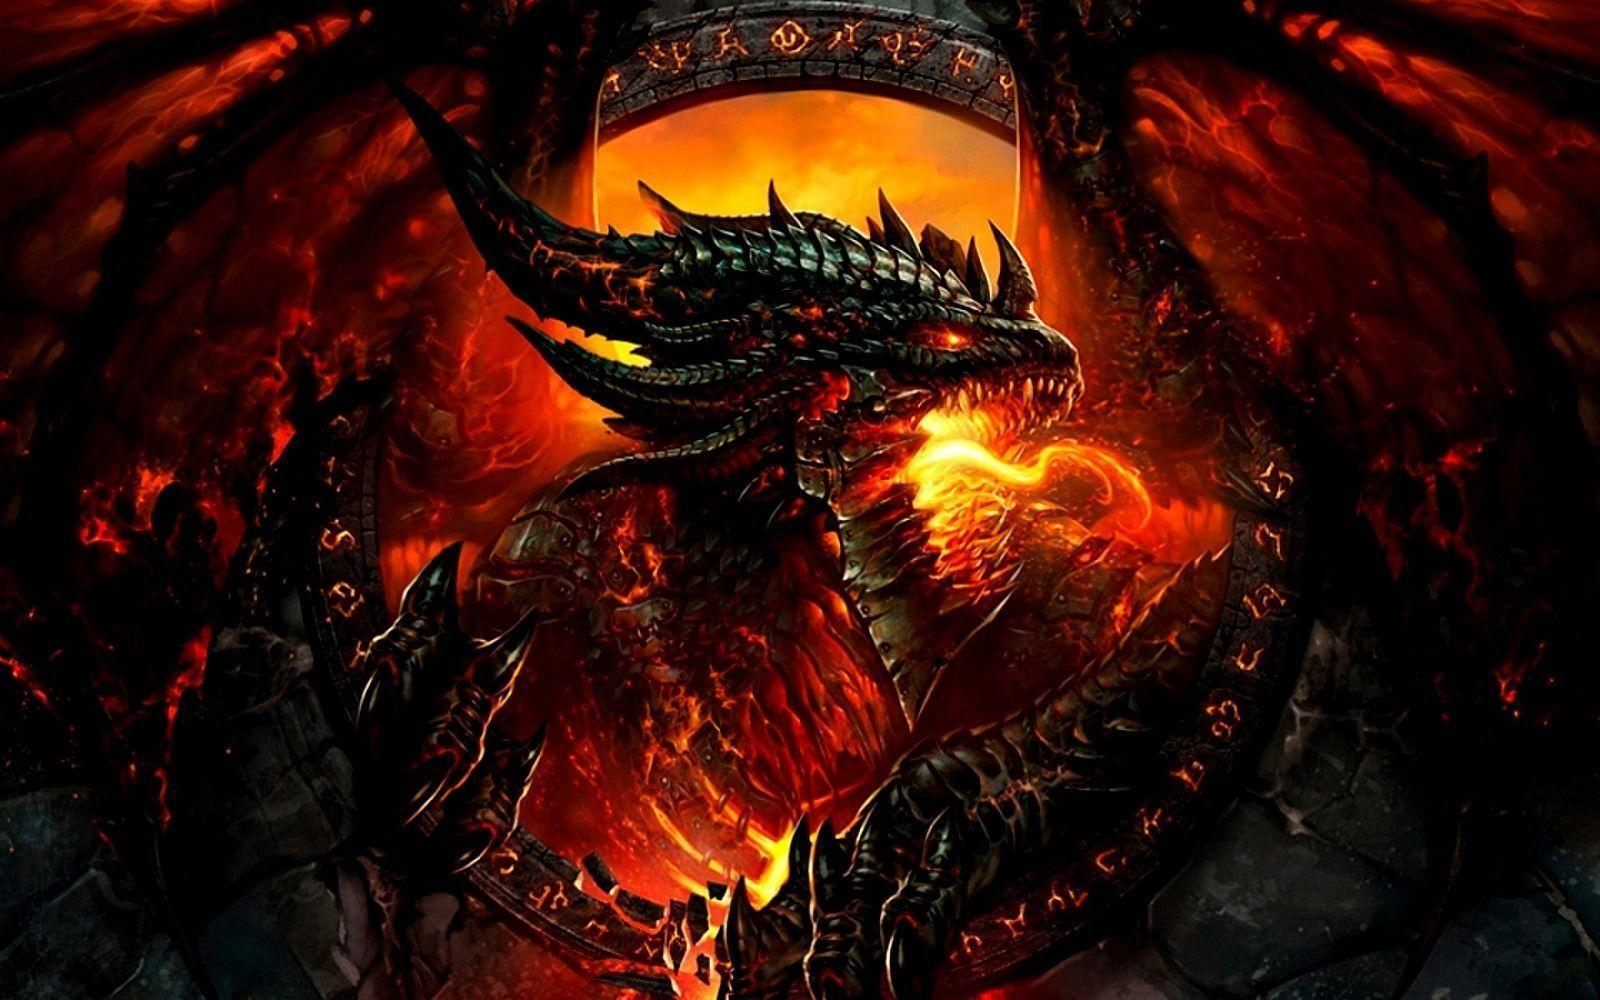 Captivating Pin By Mario A On Dragons | Pinterest | Dragons And Wallpaper